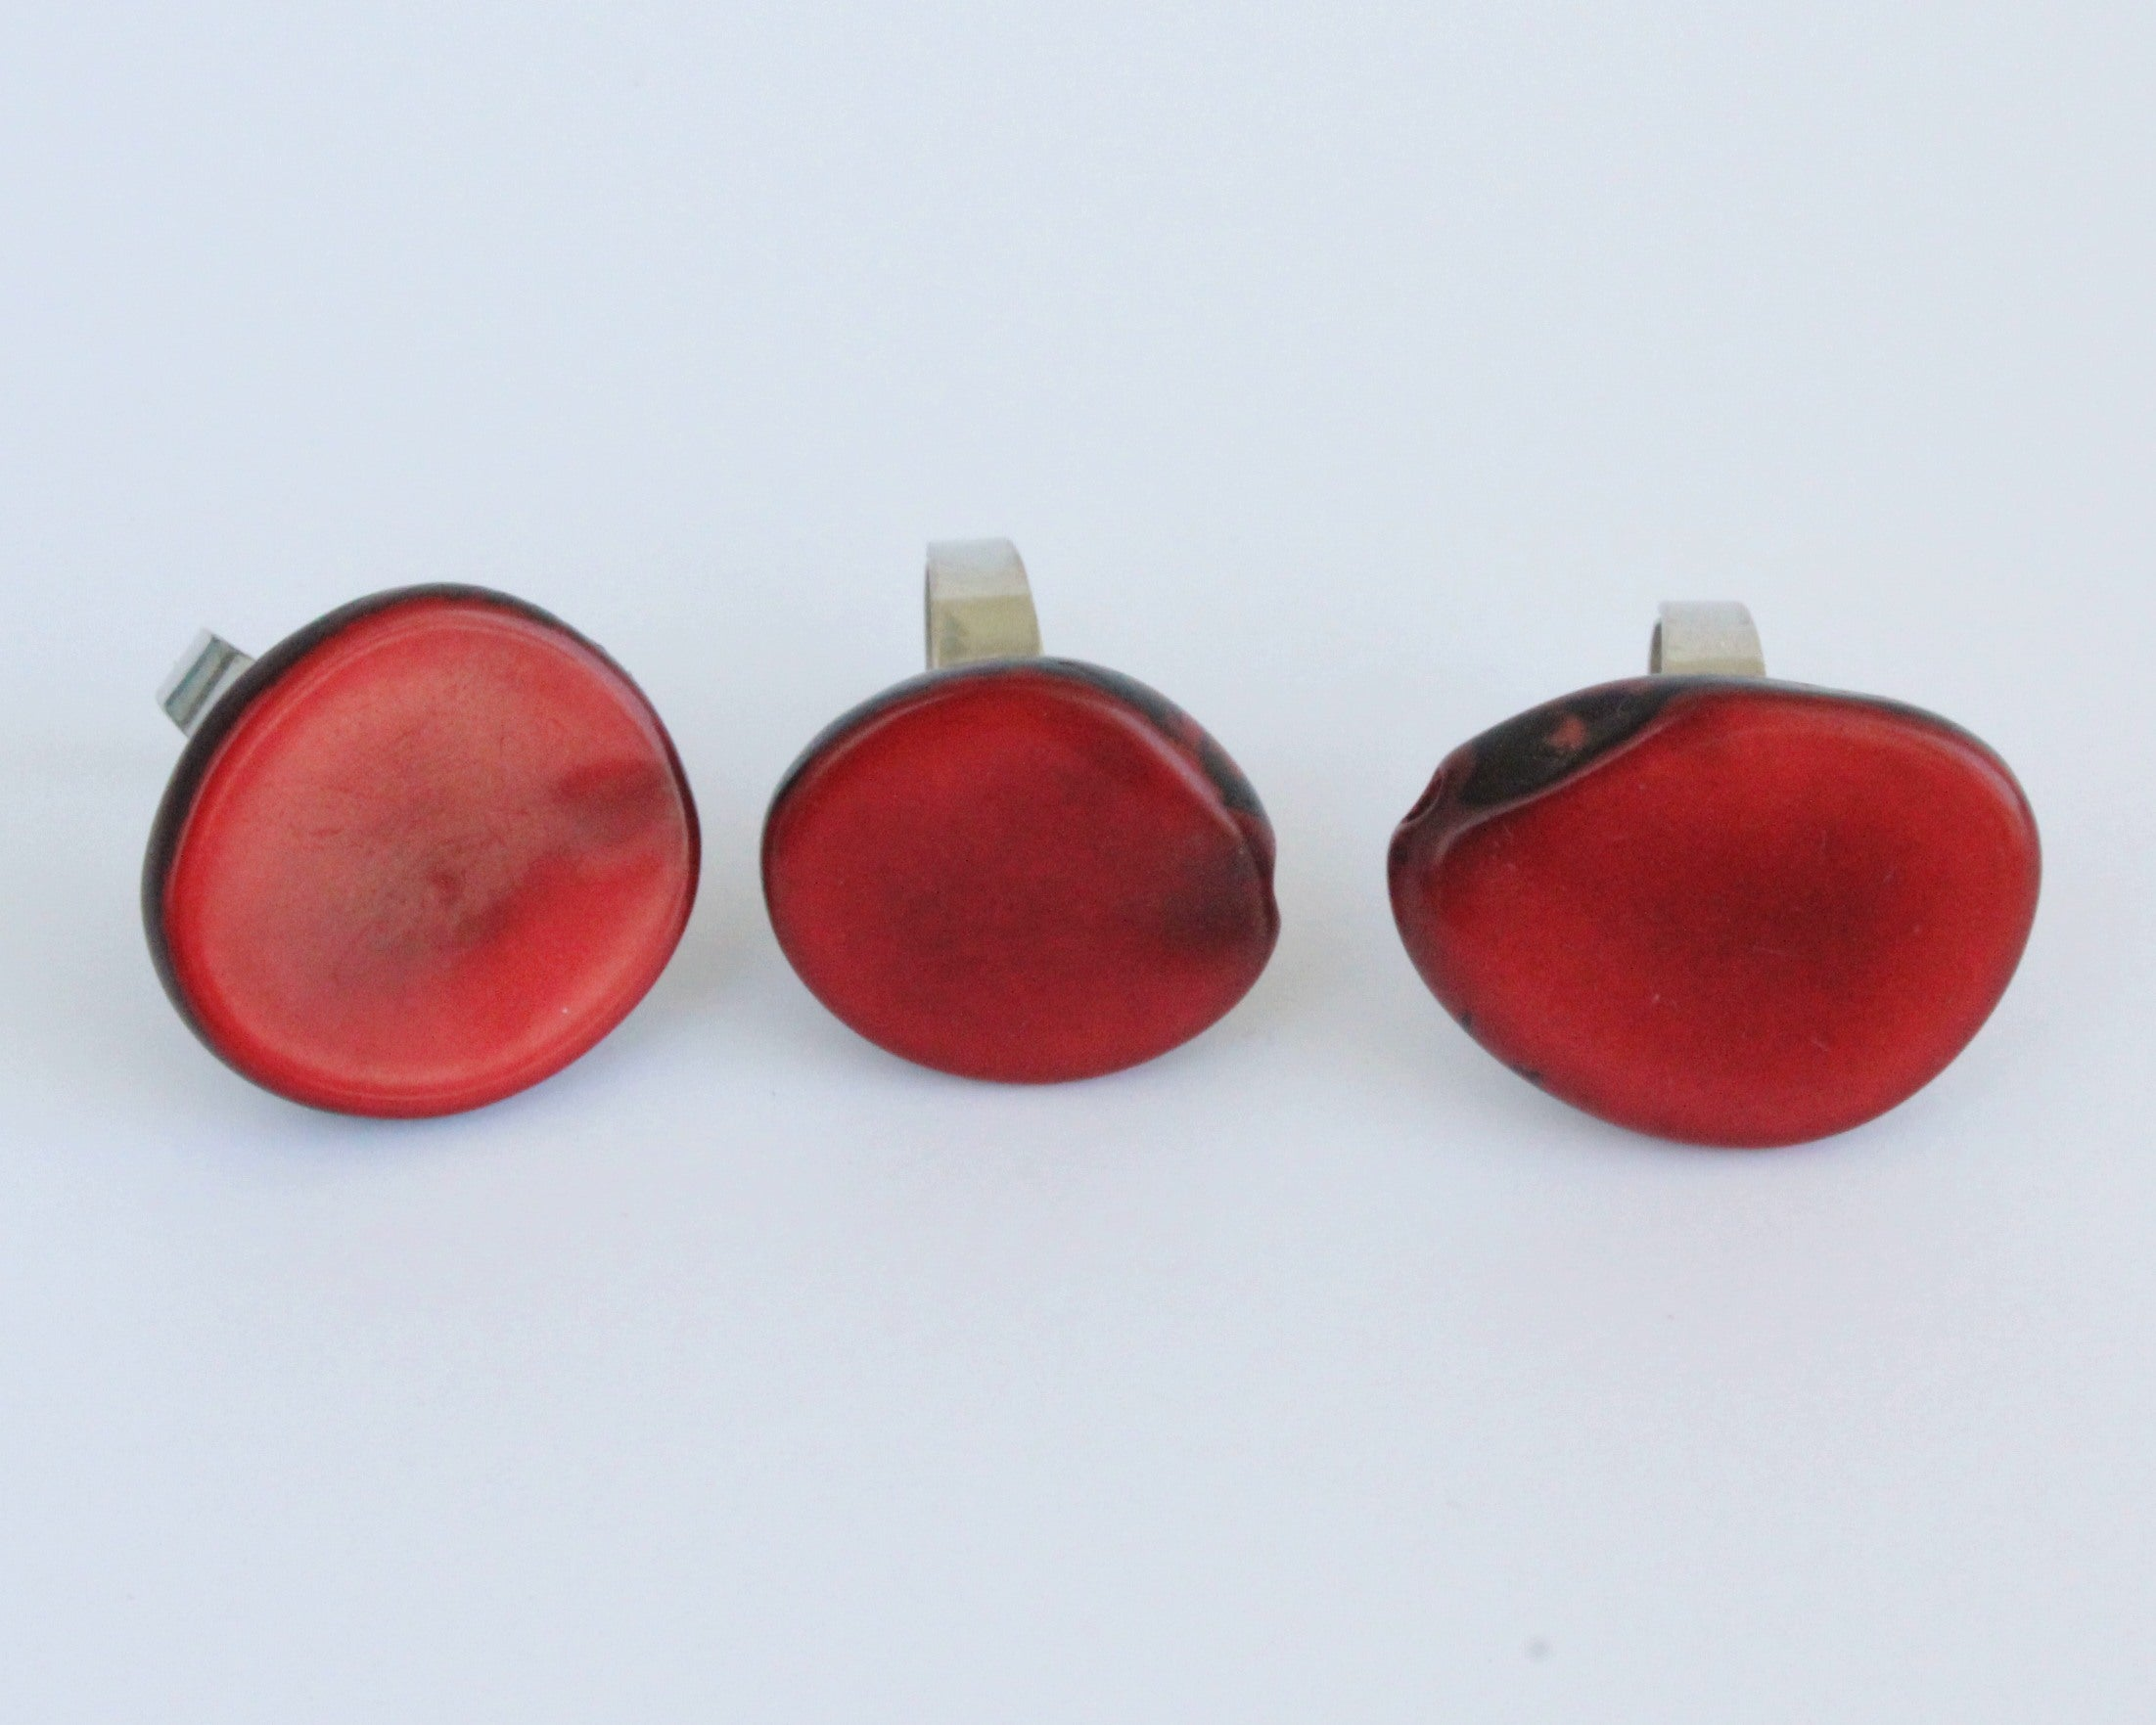 Handmade ring, tagua, red, adjustable ring size, sustainable, ethical, three front